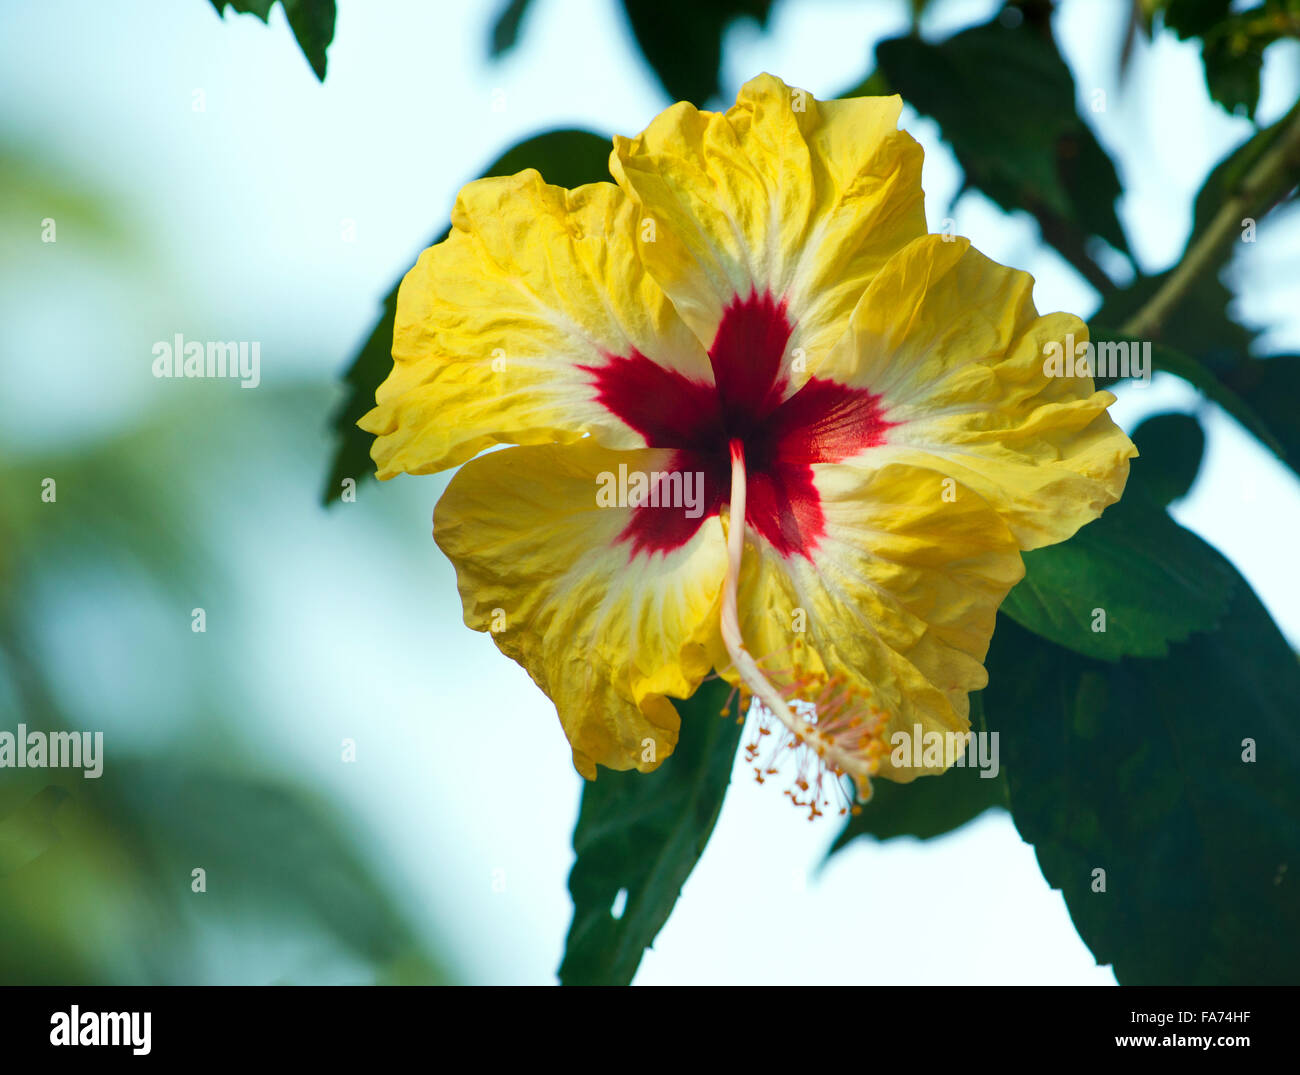 Red flower india stock photos red flower india stock images alamy flower a hibiscus yellow with the red middle a flower a hibiscus a izmirmasajfo